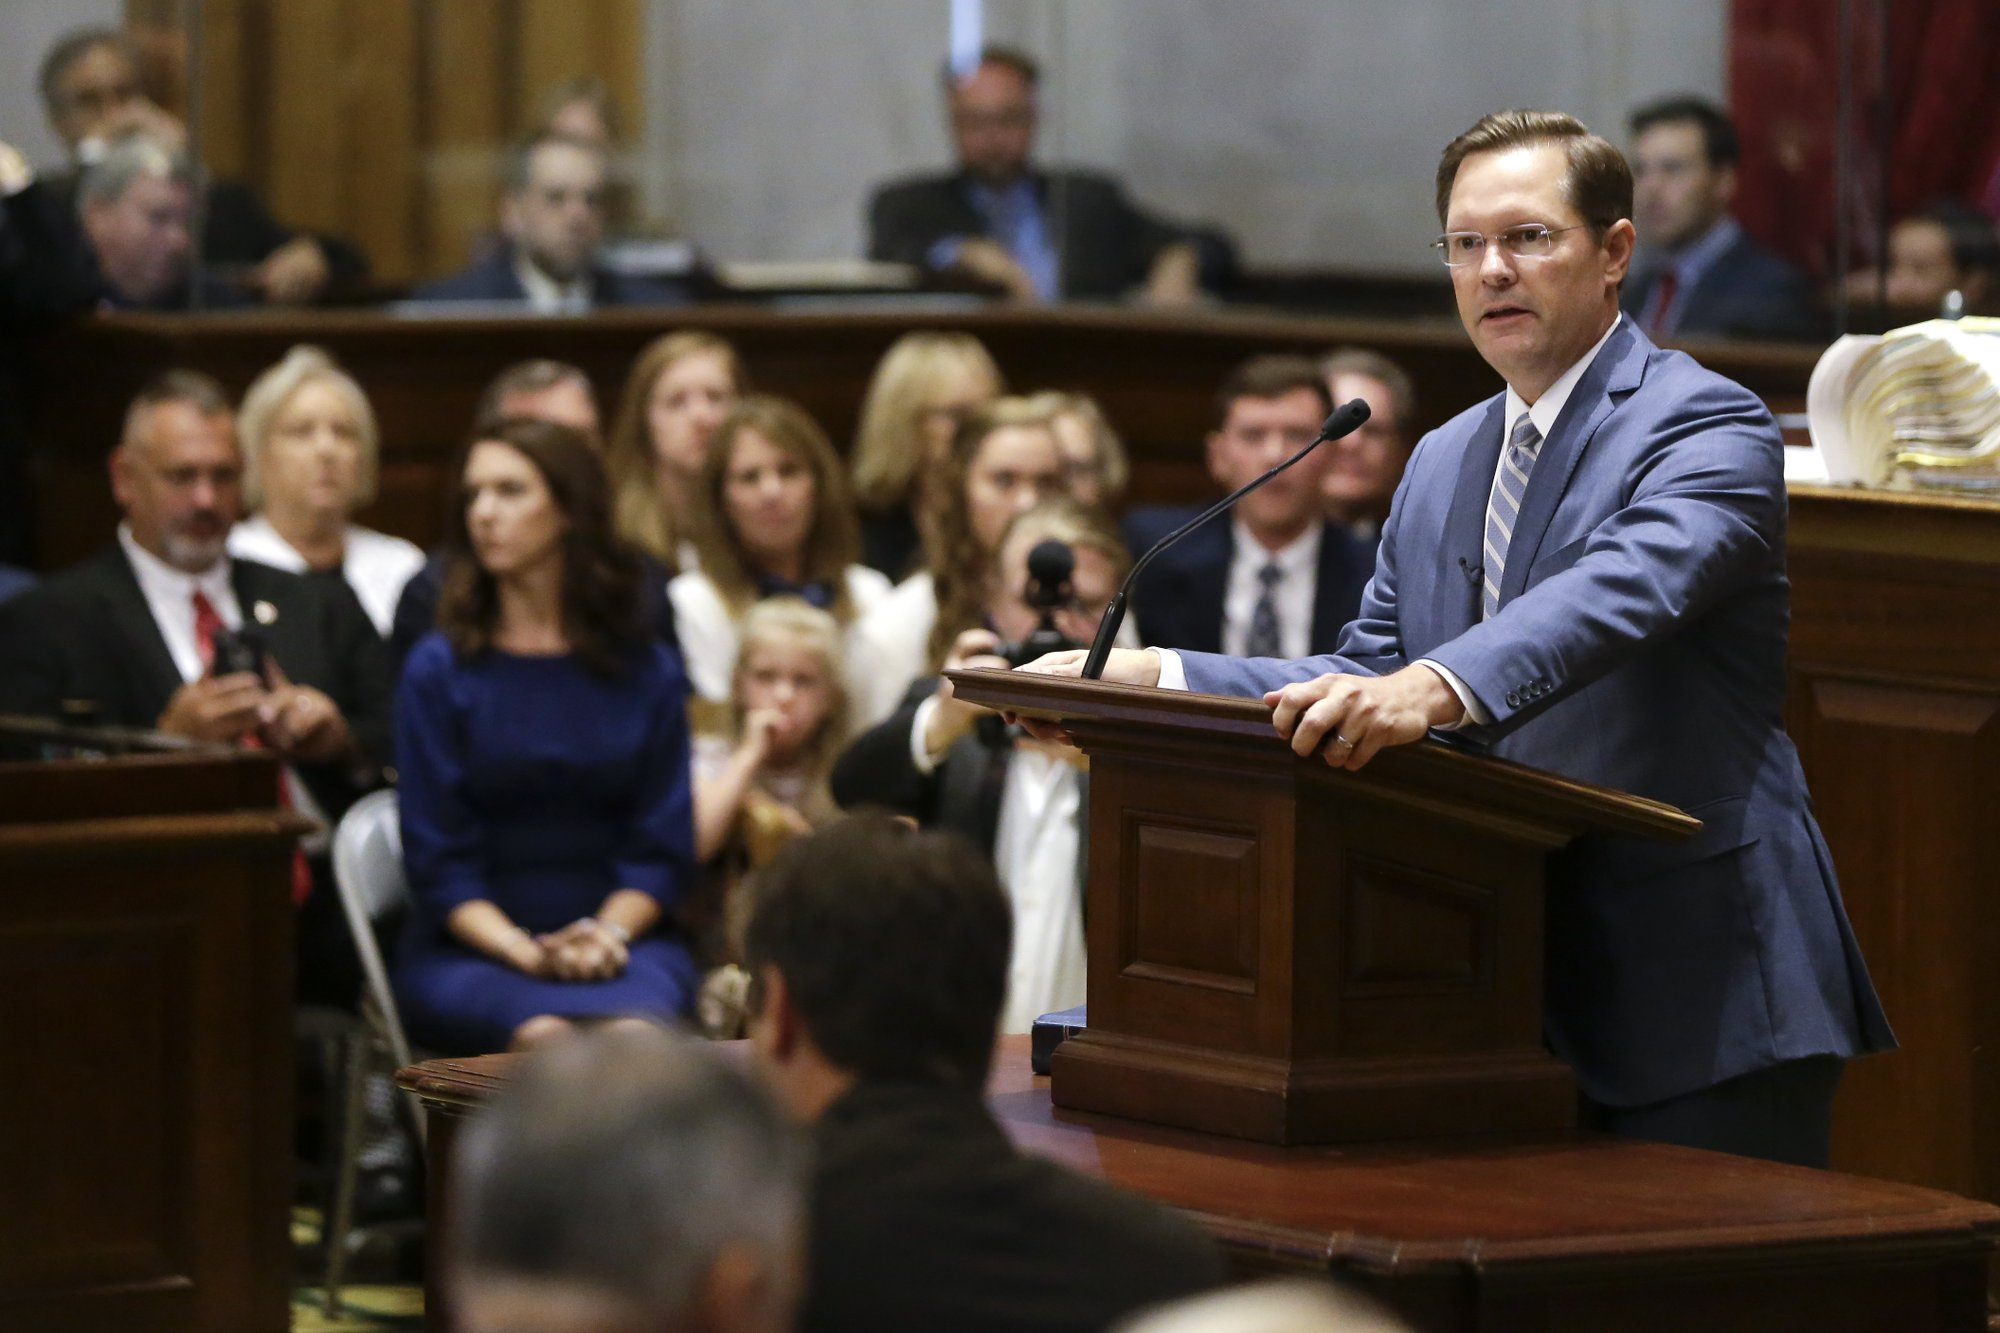 Tennessee House replaces speaker, delays action on lawmaker